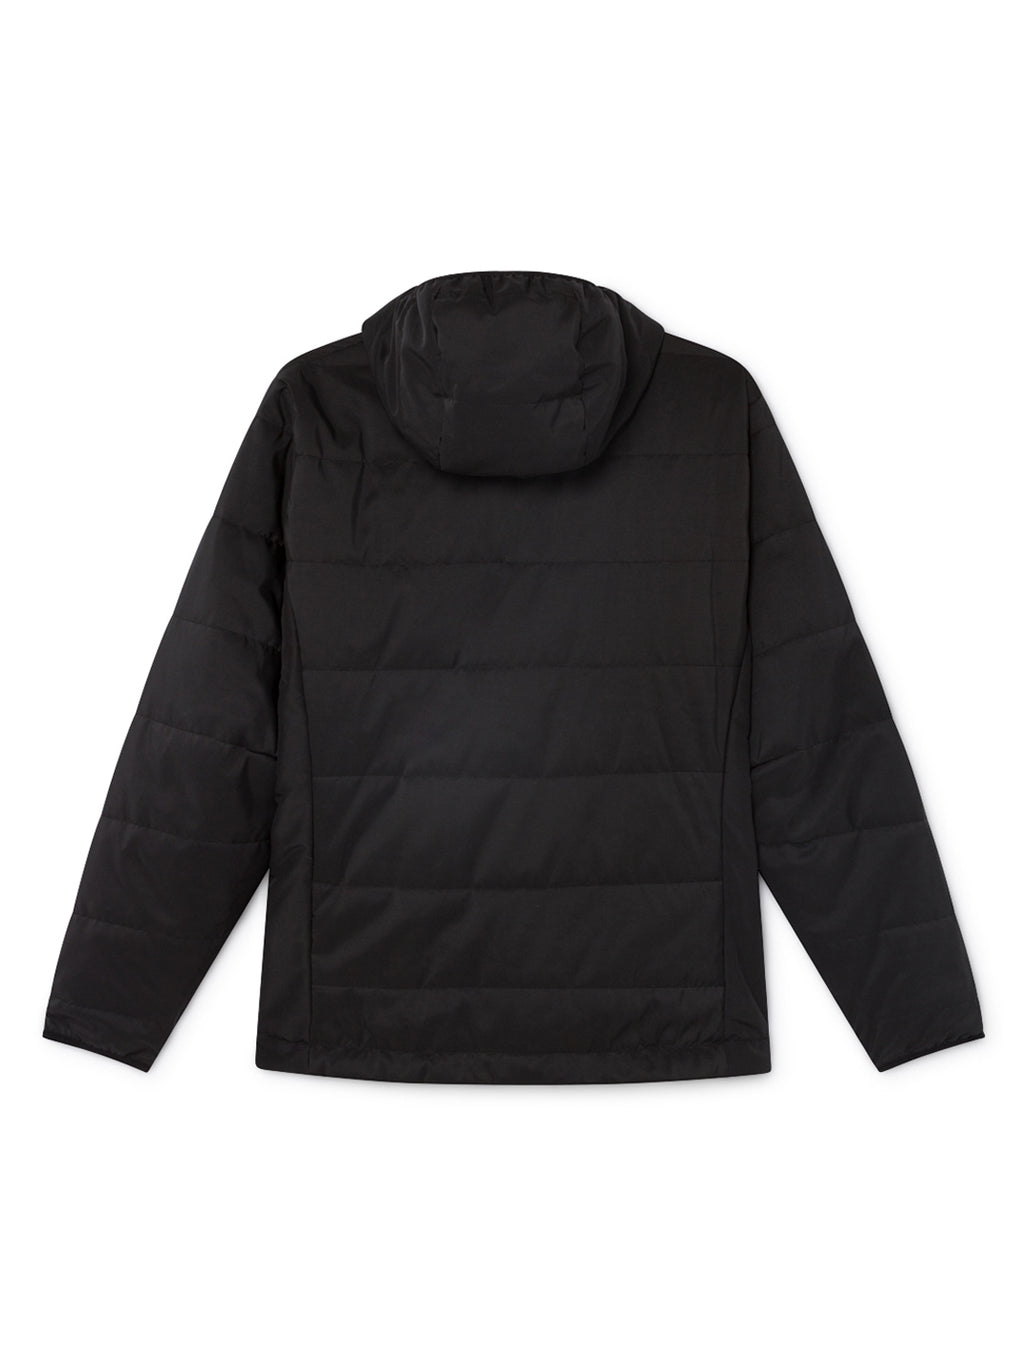 TWOTHIRDS Mens Jacket: Tabarca Men - Black back